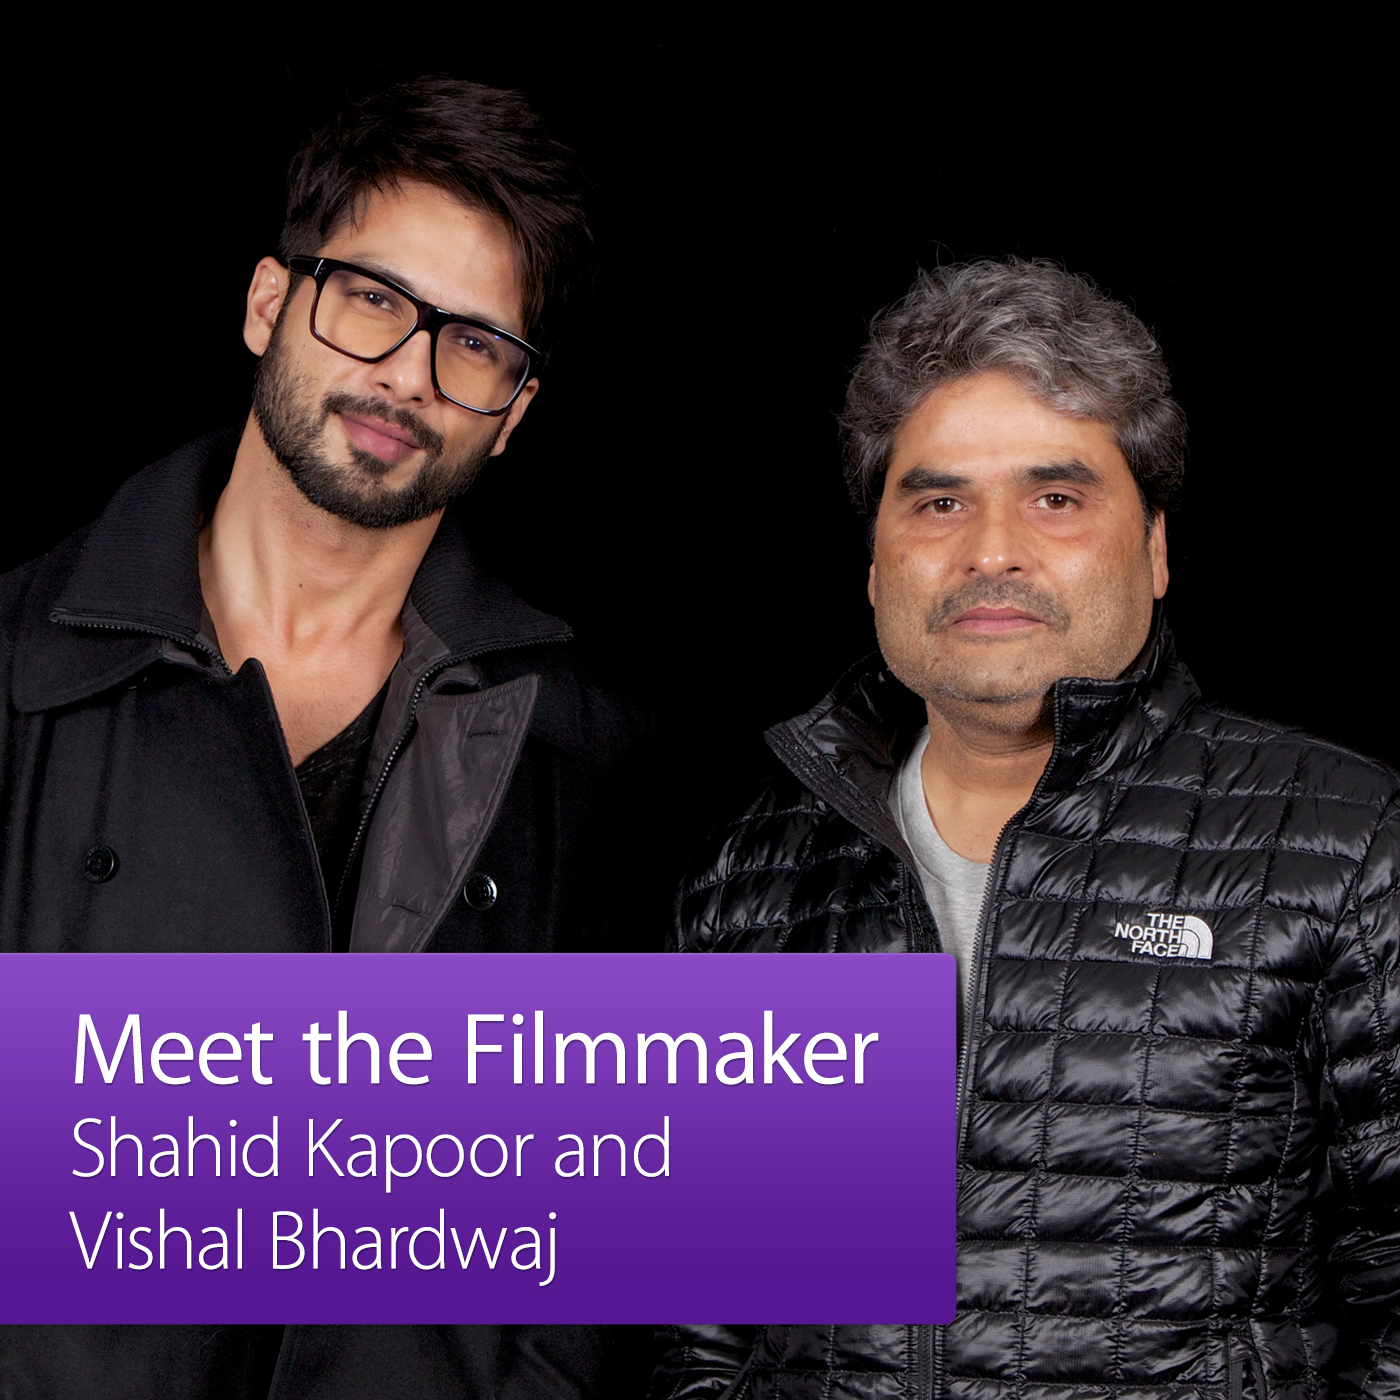 Haider: Meet the Filmmaker